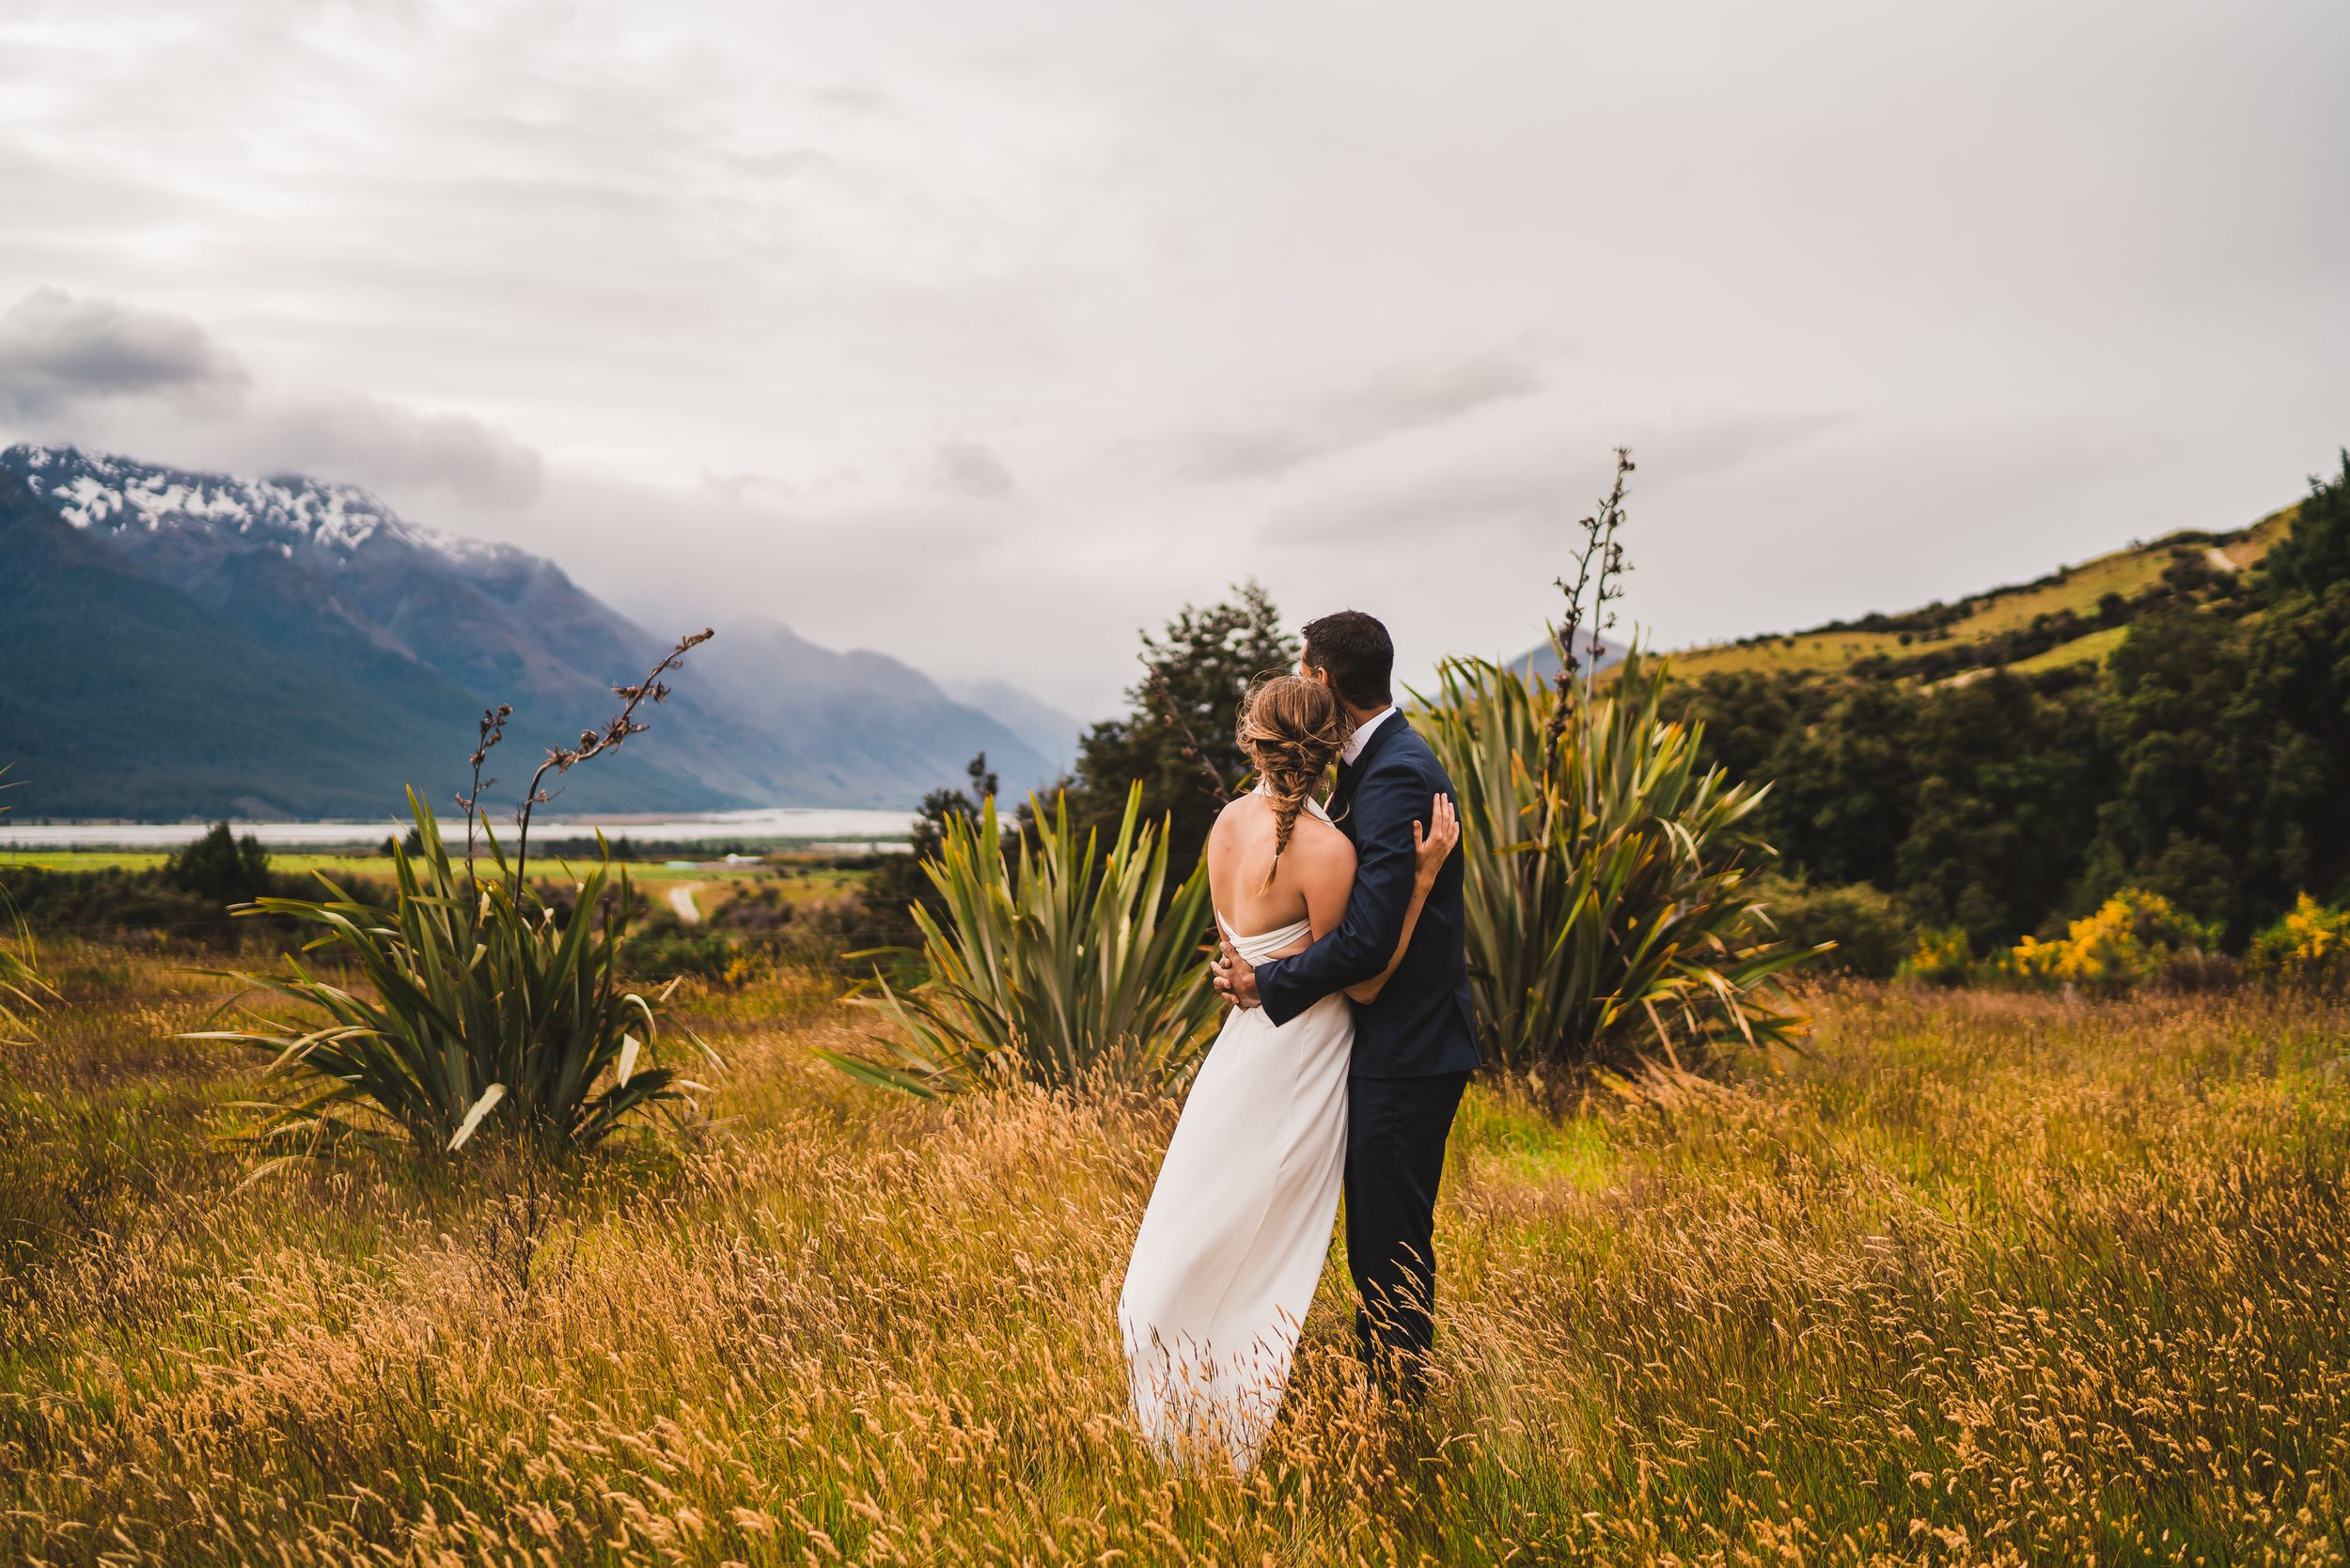 Photographer Maria Karlsson Swedish Adventure Elopement Couple and mountains in new zealand Bridal gown